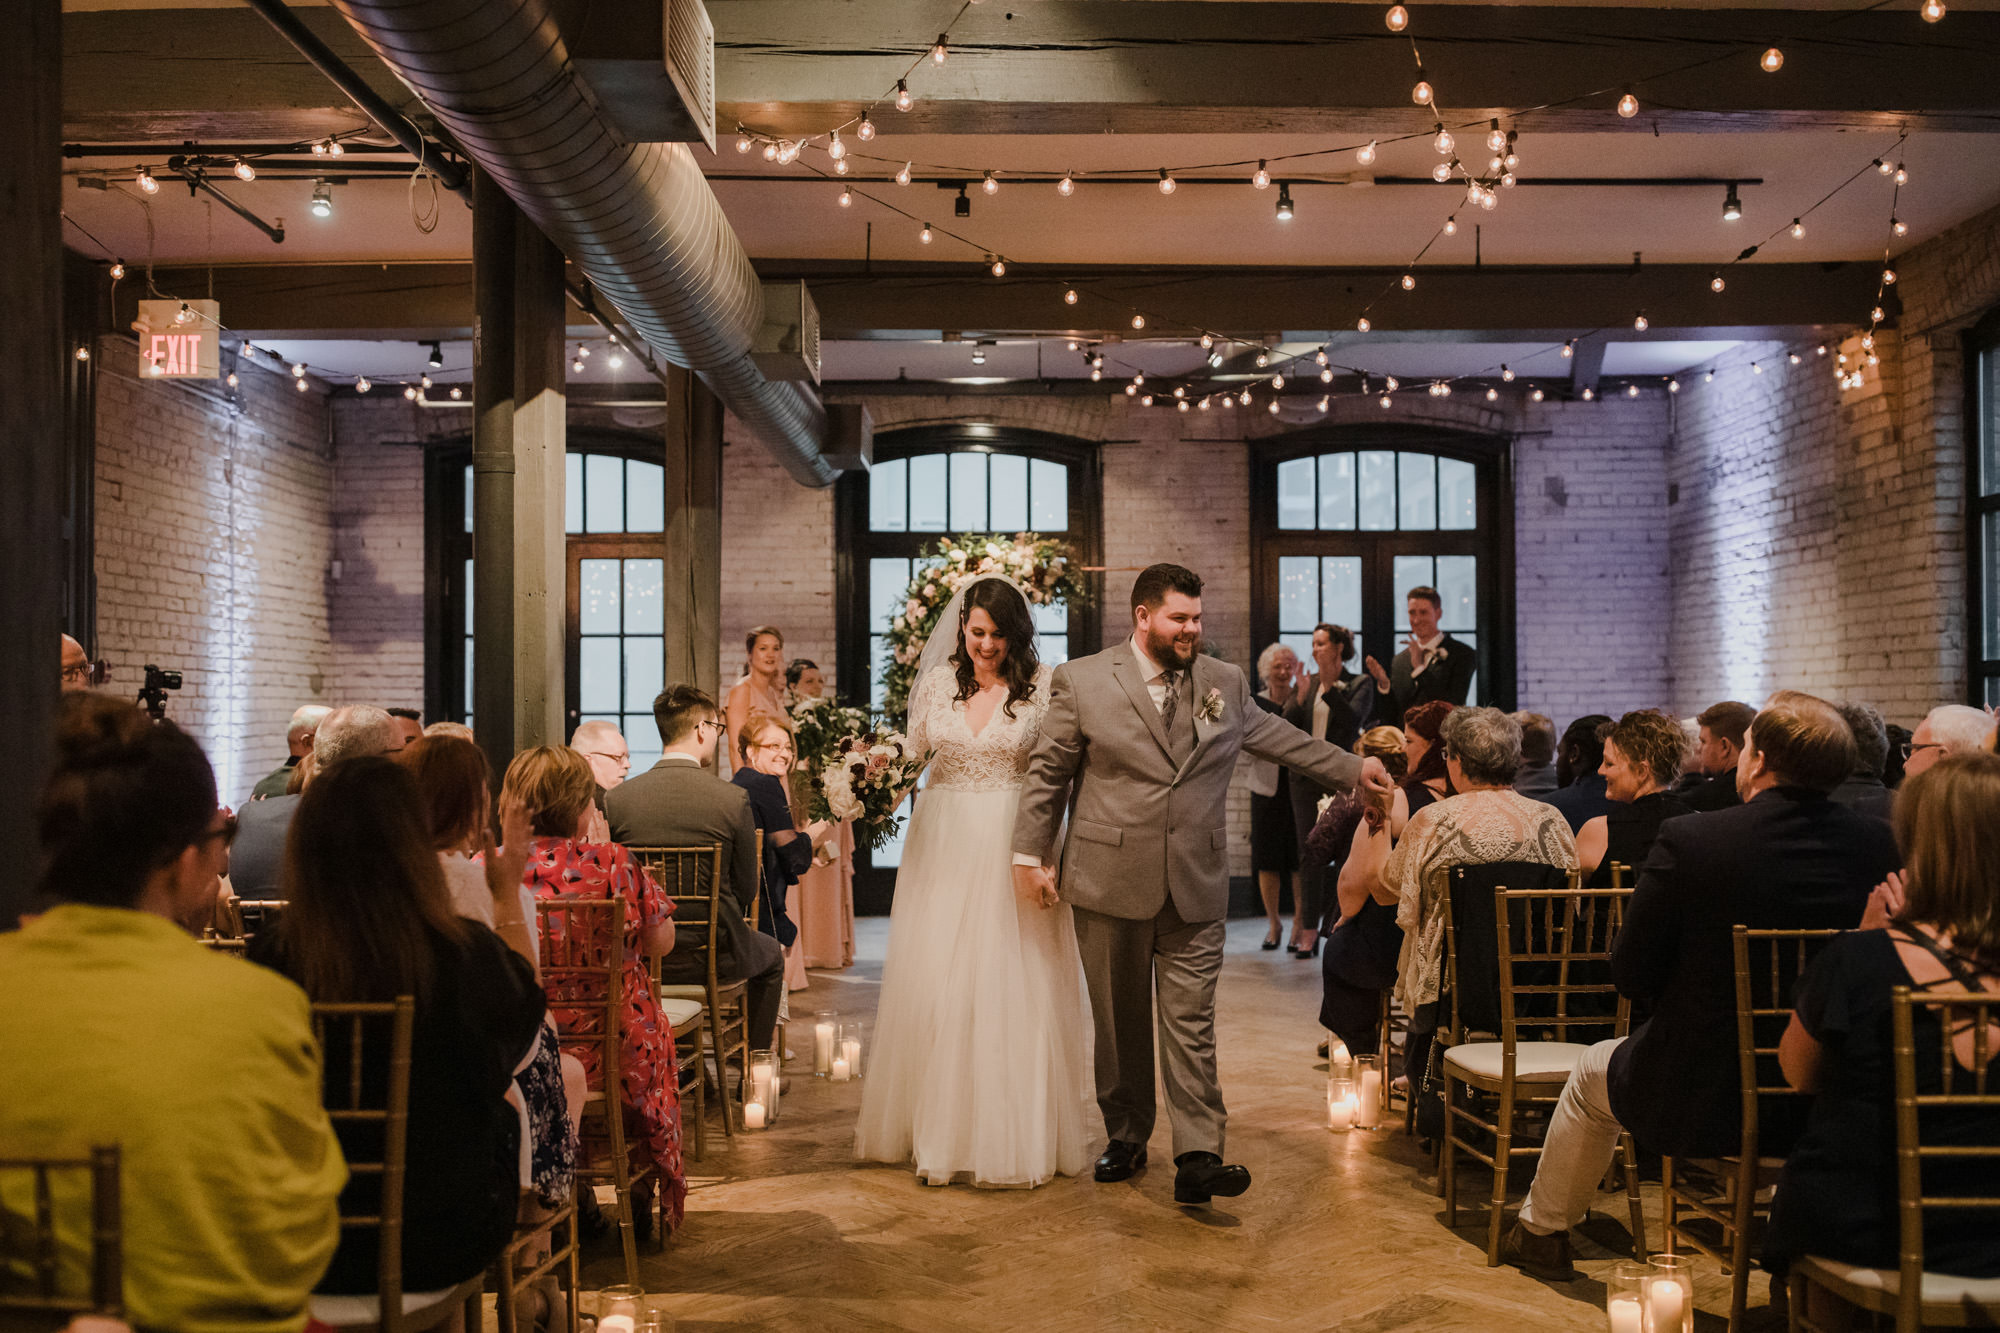 Storys Building Wedding